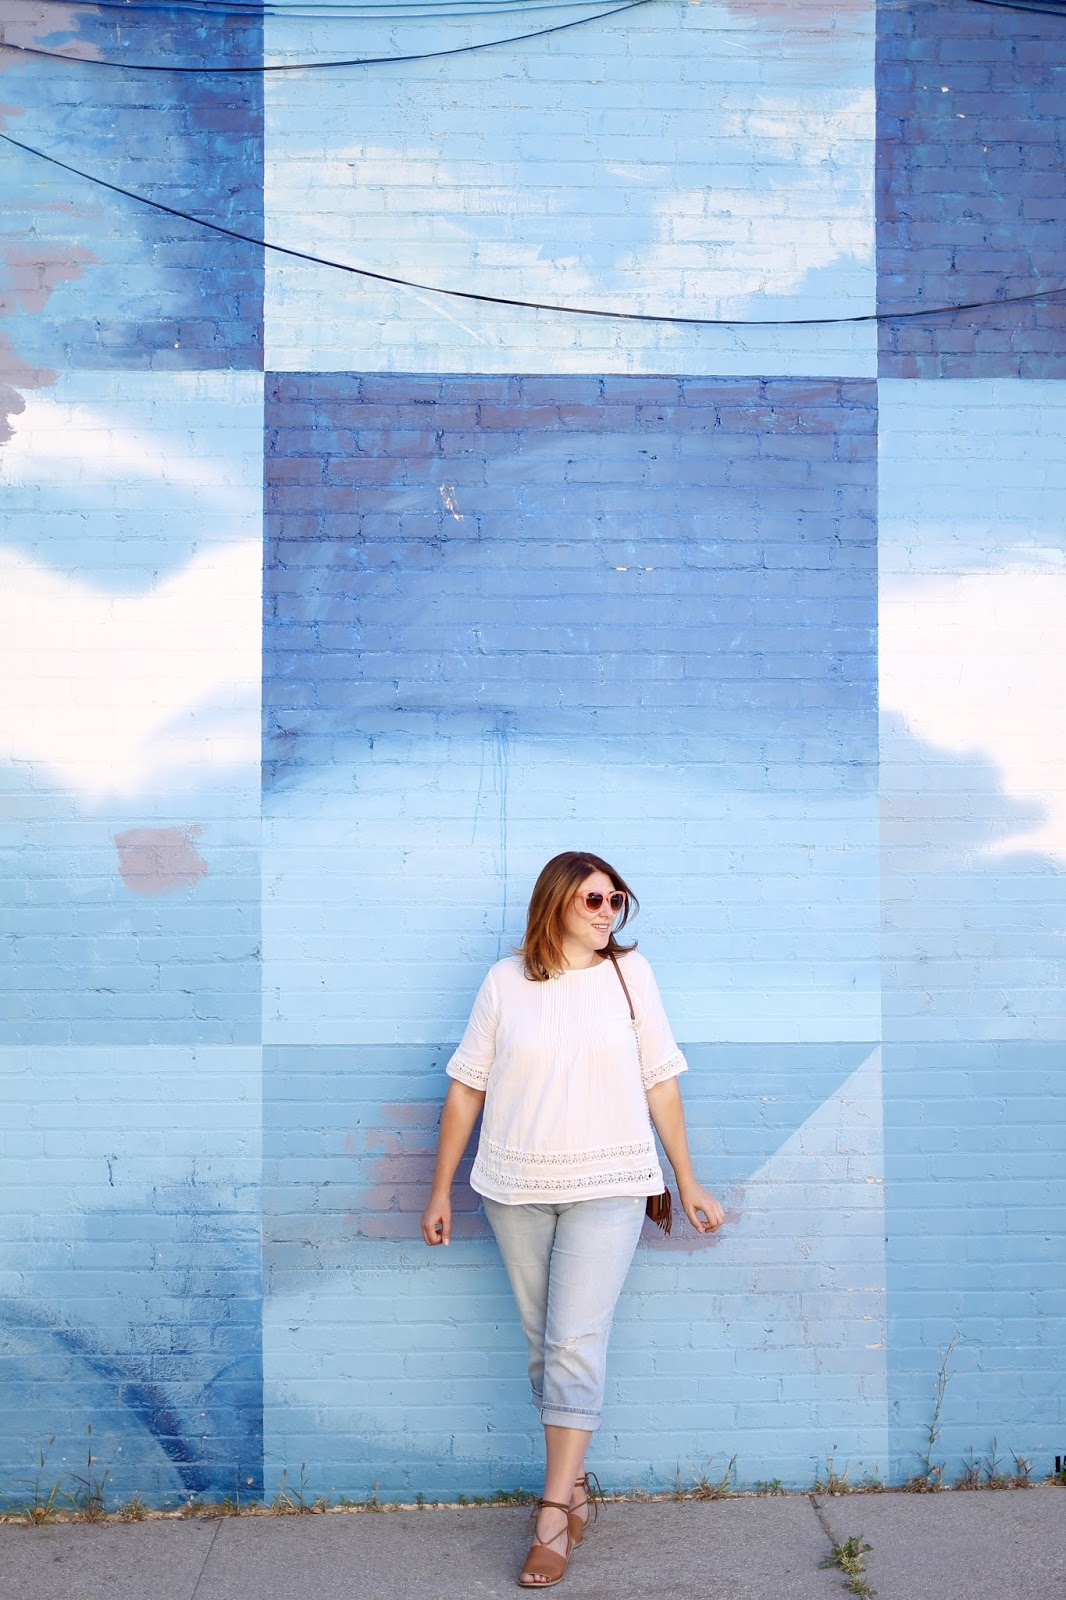 murals, wall guide, salt lake city, utah, colorful walls, blogger walls